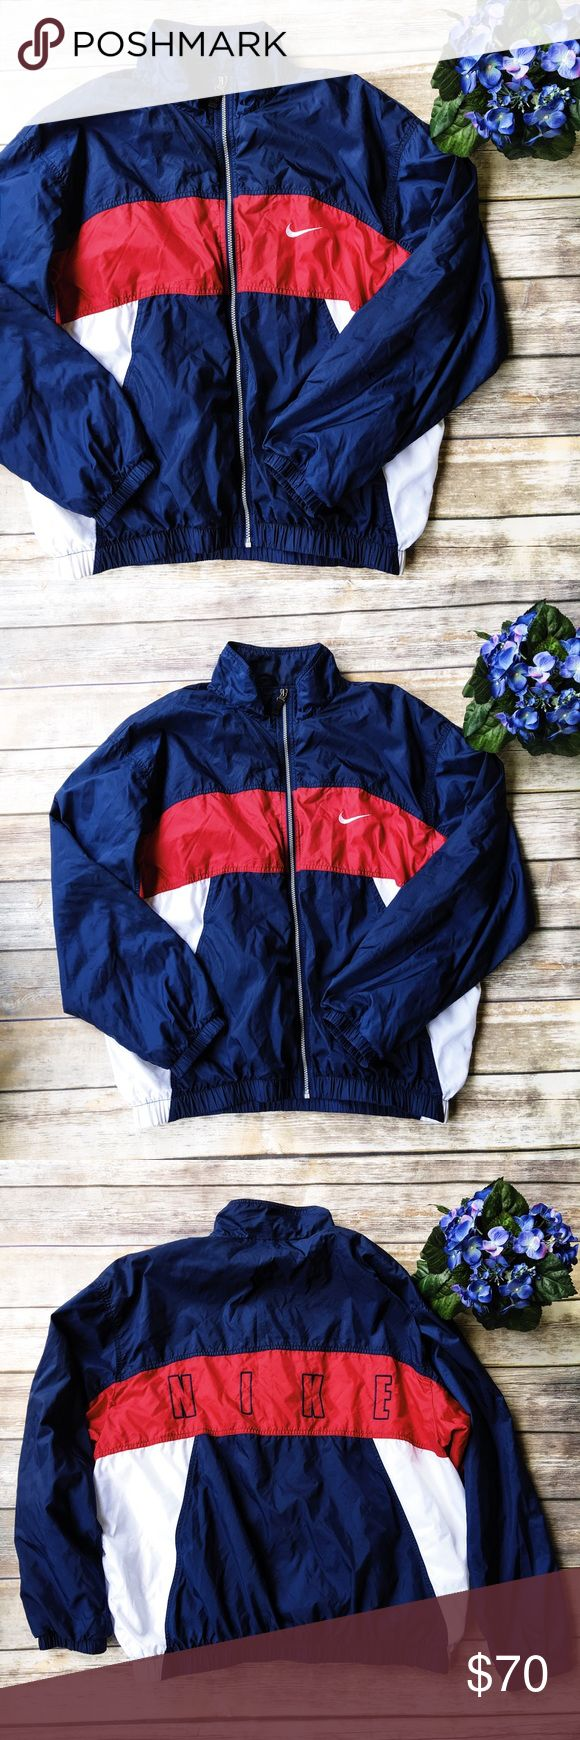 Nike Vintage Olympic Windbreaker Jacket  ★ Excellent condition. One minor pull in the stitching on the back, can very easily be fixed.  ★ This awesome vintage Nike windbreaker is an absolute must have! Perfect for fall and winter exercise activities.  Featured American colors!  ★ Polyester, Nylon. ★ NO TRADES!  ★ NO MODELING!  ★ YES REASONABLE OFFERS! ✅ ★ Measurements available by request and as soon as possible!  Nike Jackets & Coats